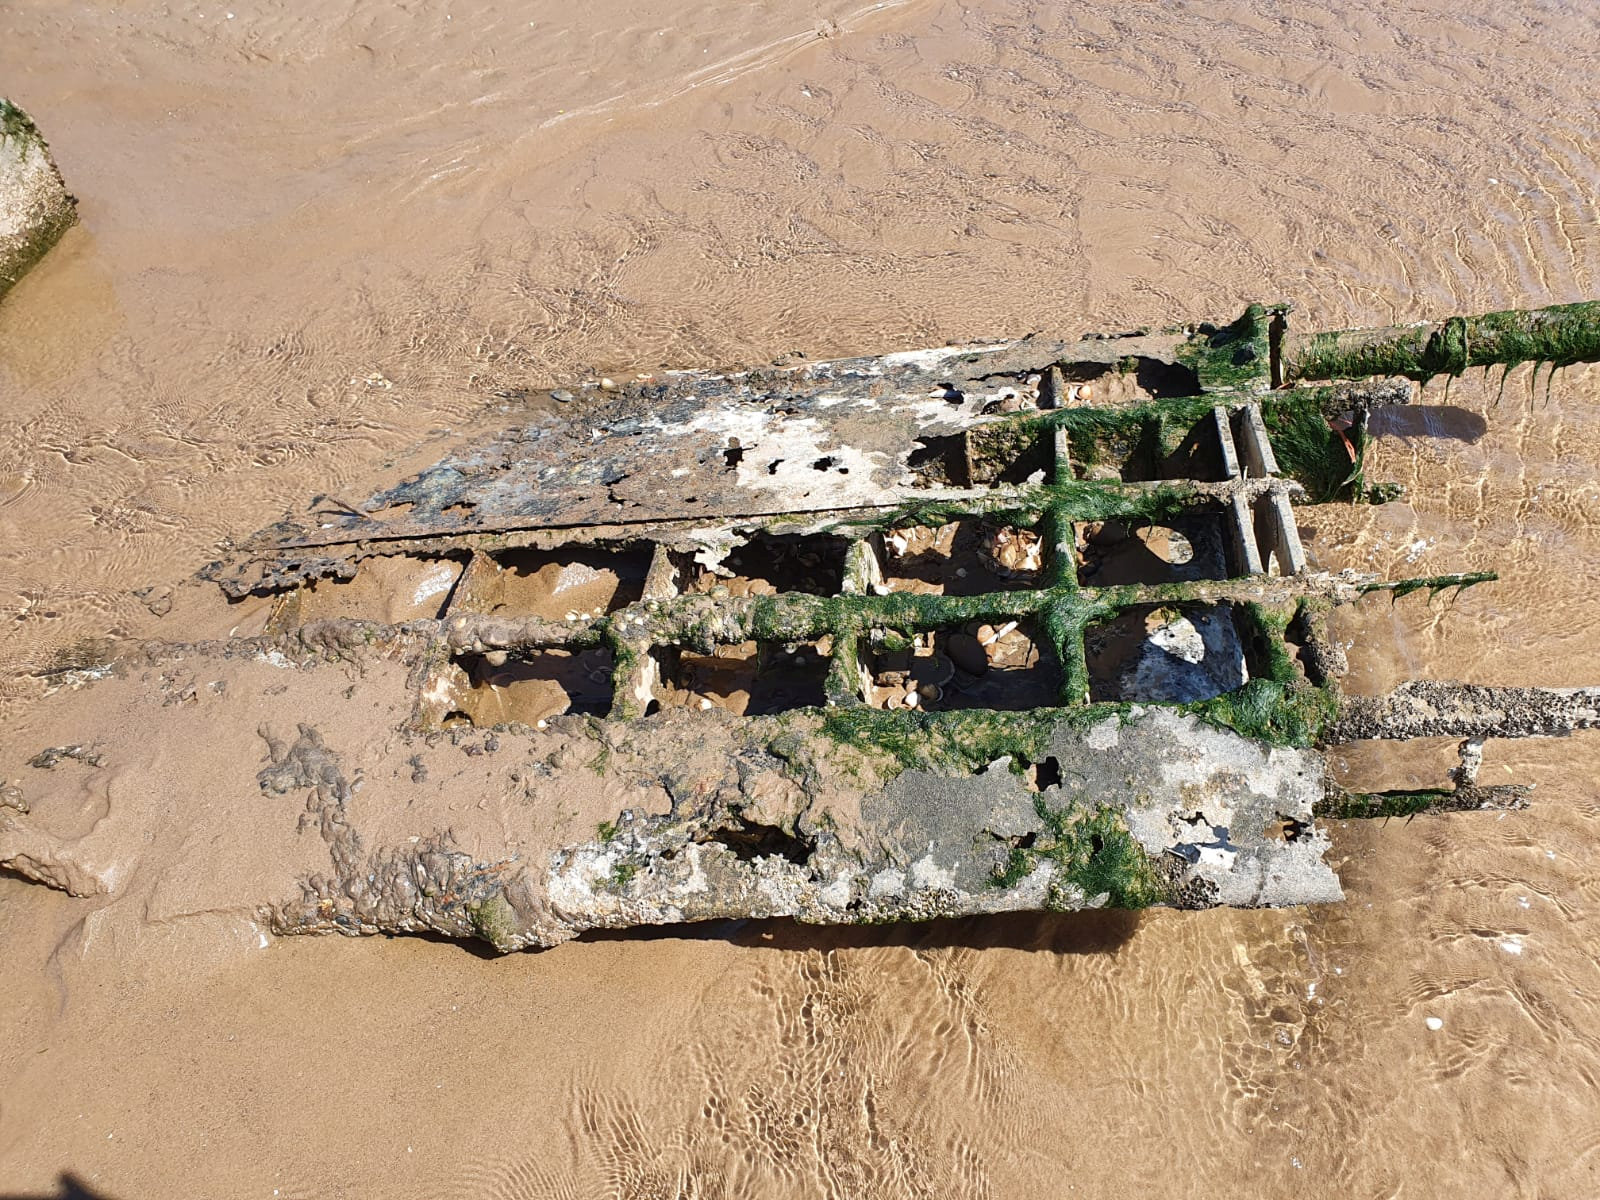 "The wreckage of the WWII RAF Bristol Beaufighter which has been discovered on a Cleethorpes beach in in North East Lincolnshire. See SWNS story SWLEplane. A pair of dog walkers stumbled across the wreckage of a rare WWII RAF fighter plane hidden on a beach where it had been buried under the sand for 76 YEARS. Debi Hartley, 51, was on a casual walk with her partner Graham Holden, 54, and their dog Bonnie when they made the ""one in a million"" discovery.  The carcass of the airplane revealed itself on an undisclosed patch on Cleethorpes beach, with its wings protruding through the shifting sands. The RAF confirmed that the wreckage is one of their Bristol Beaufighter, believed to be aircraft serial number JM333 of 254 Squadron RAF."